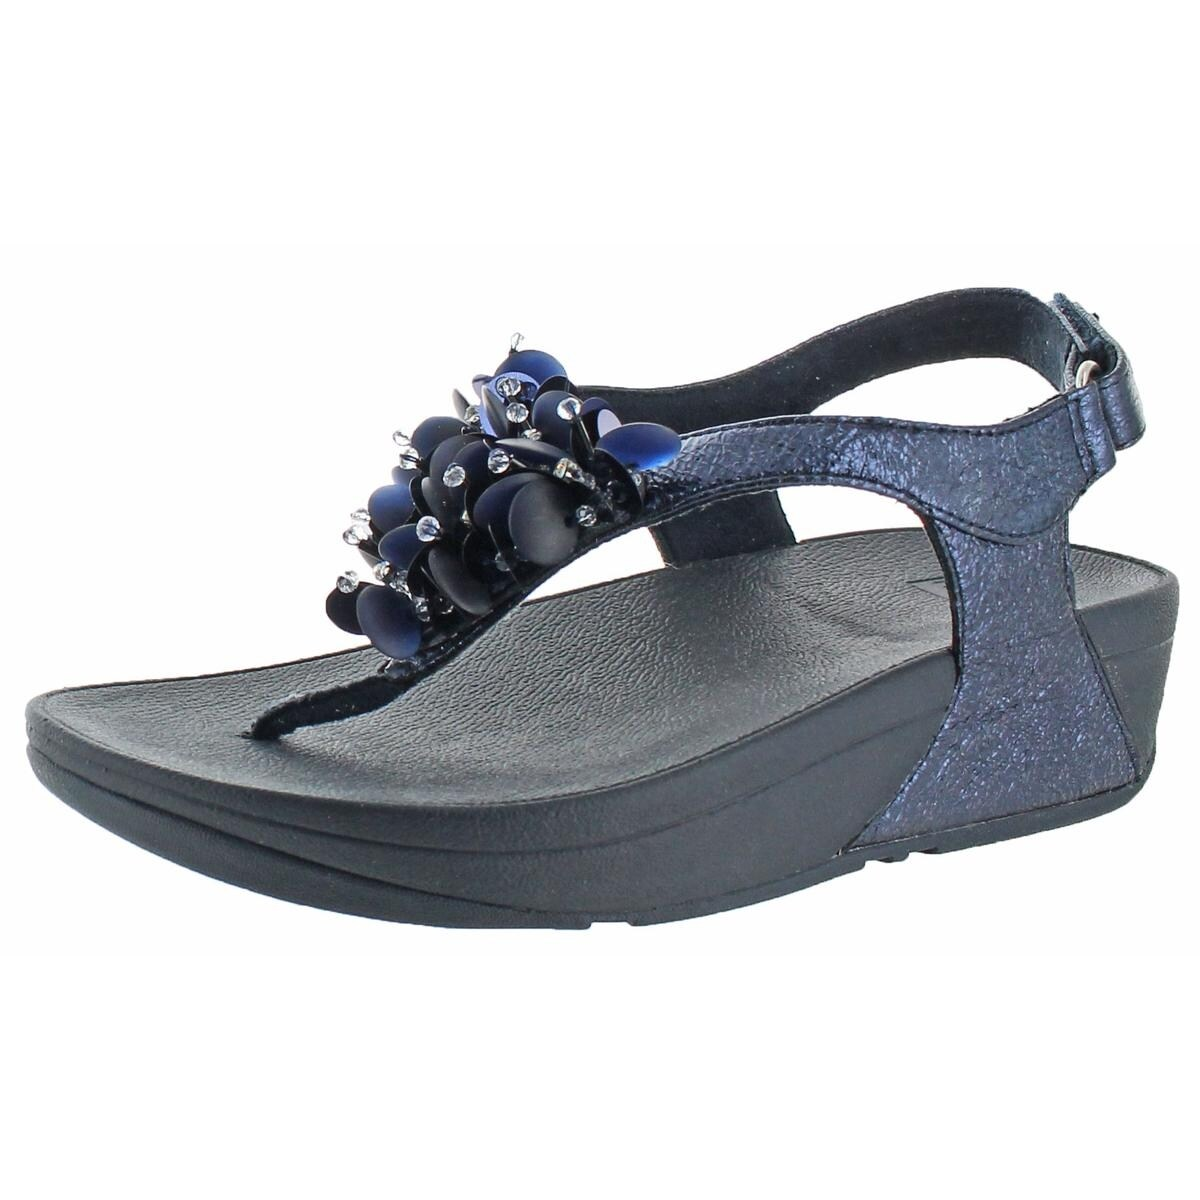 66820e0b9fe1 Shop Fitflop Womens Boogaloo Back Strap Thong Sandals Leather Back Strap -  Free Shipping Today - Overstock - 26060684